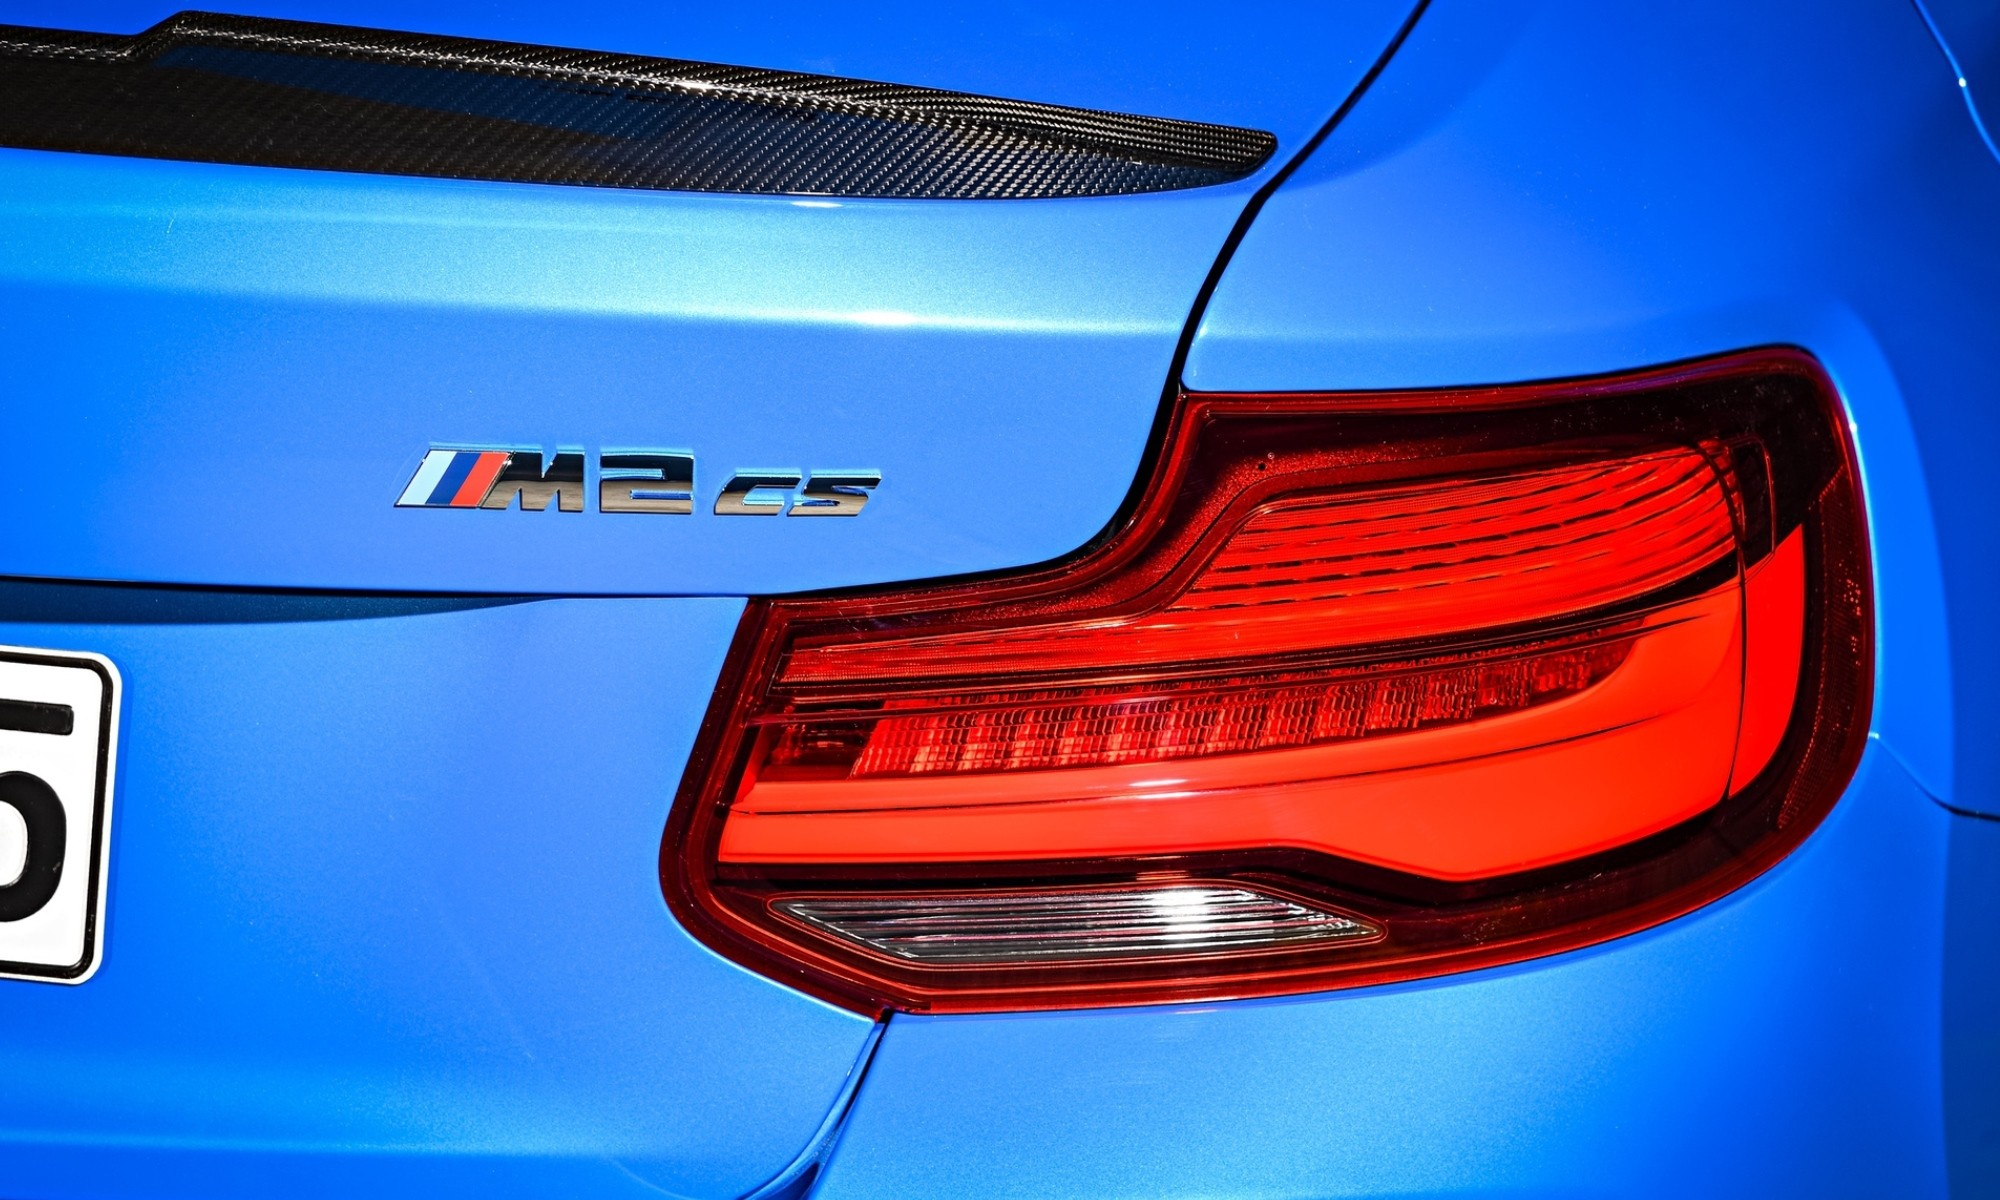 BMW M2 CS badge